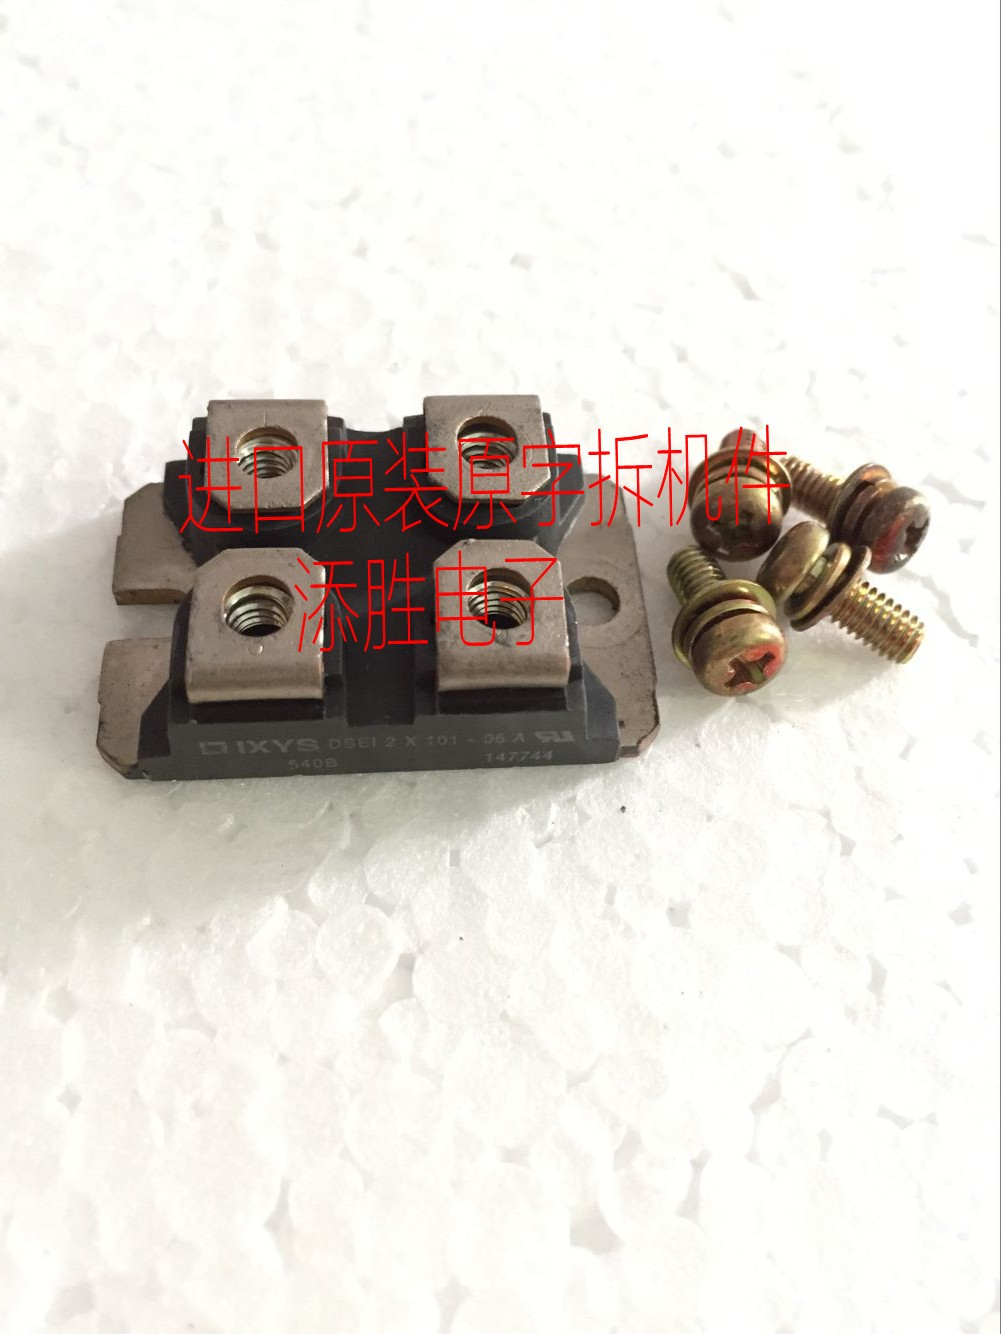 DSEI2X101-06A Fast Recovery 2X100A600V Fast Tube 200A600V Fast Tube Rectars Diodes